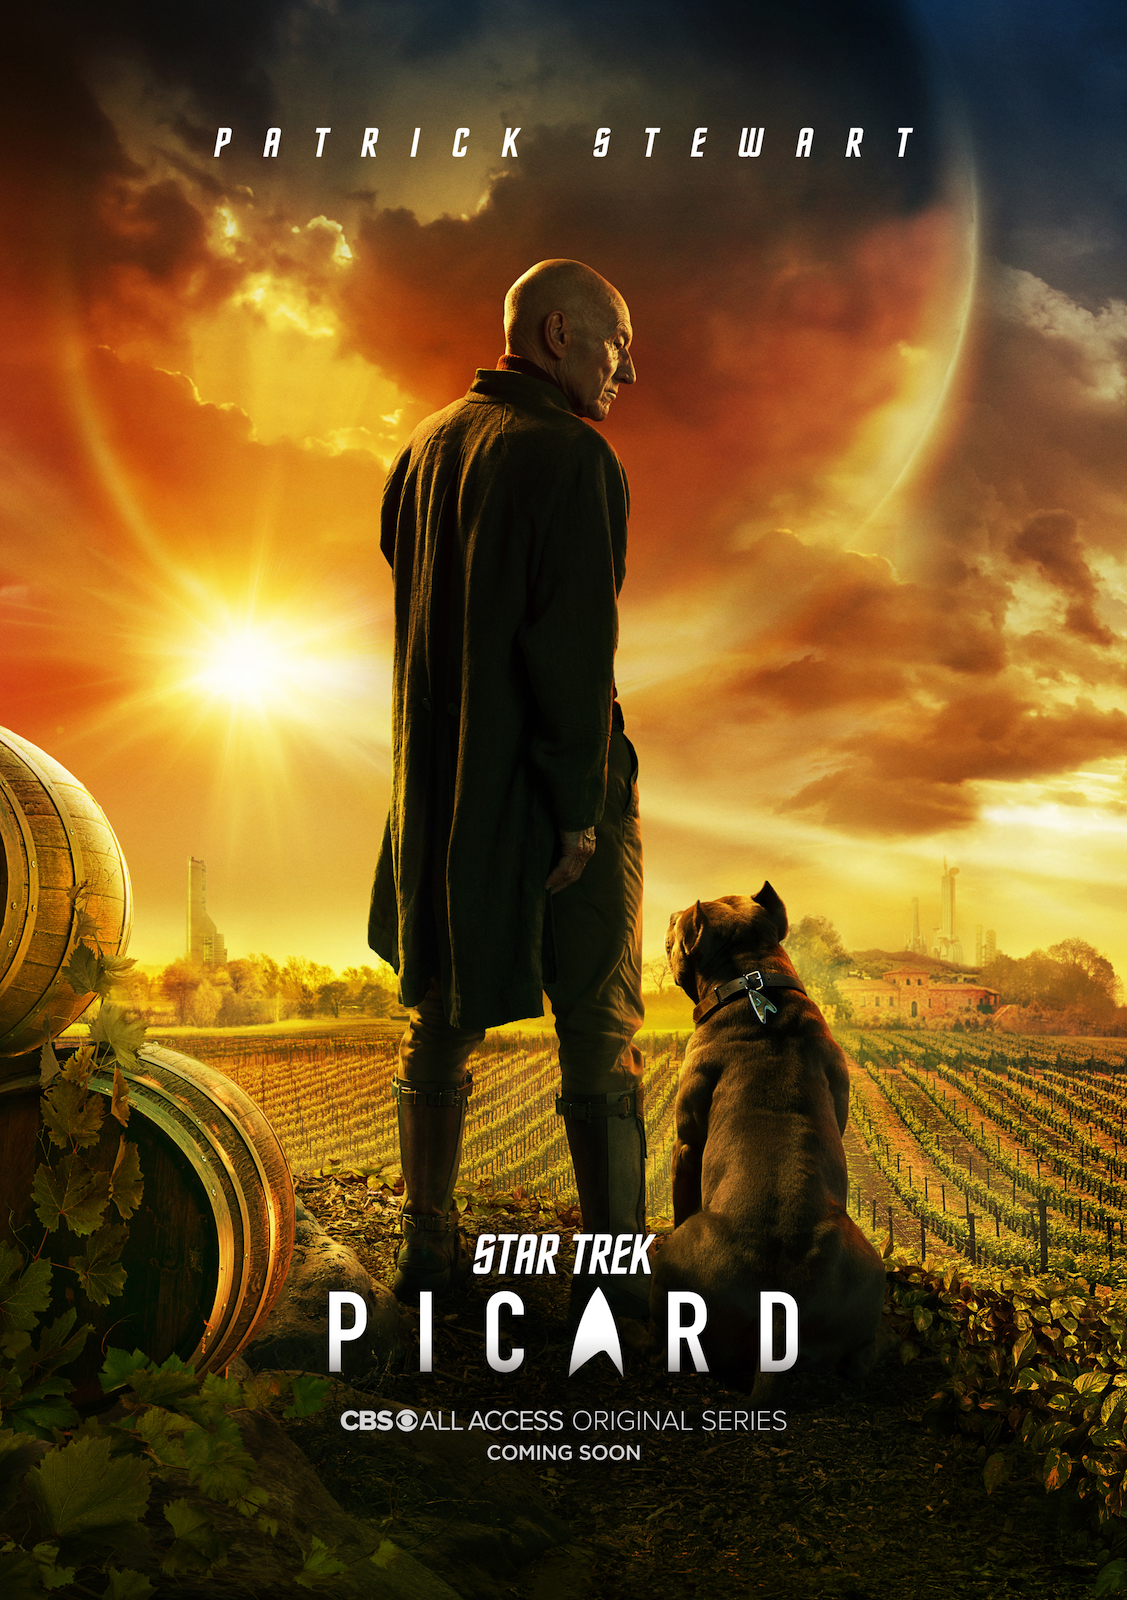 Amazon confirma presença de elenco das séries The Boys, The Expanse e Star Trek: Picard na CCXP19 2